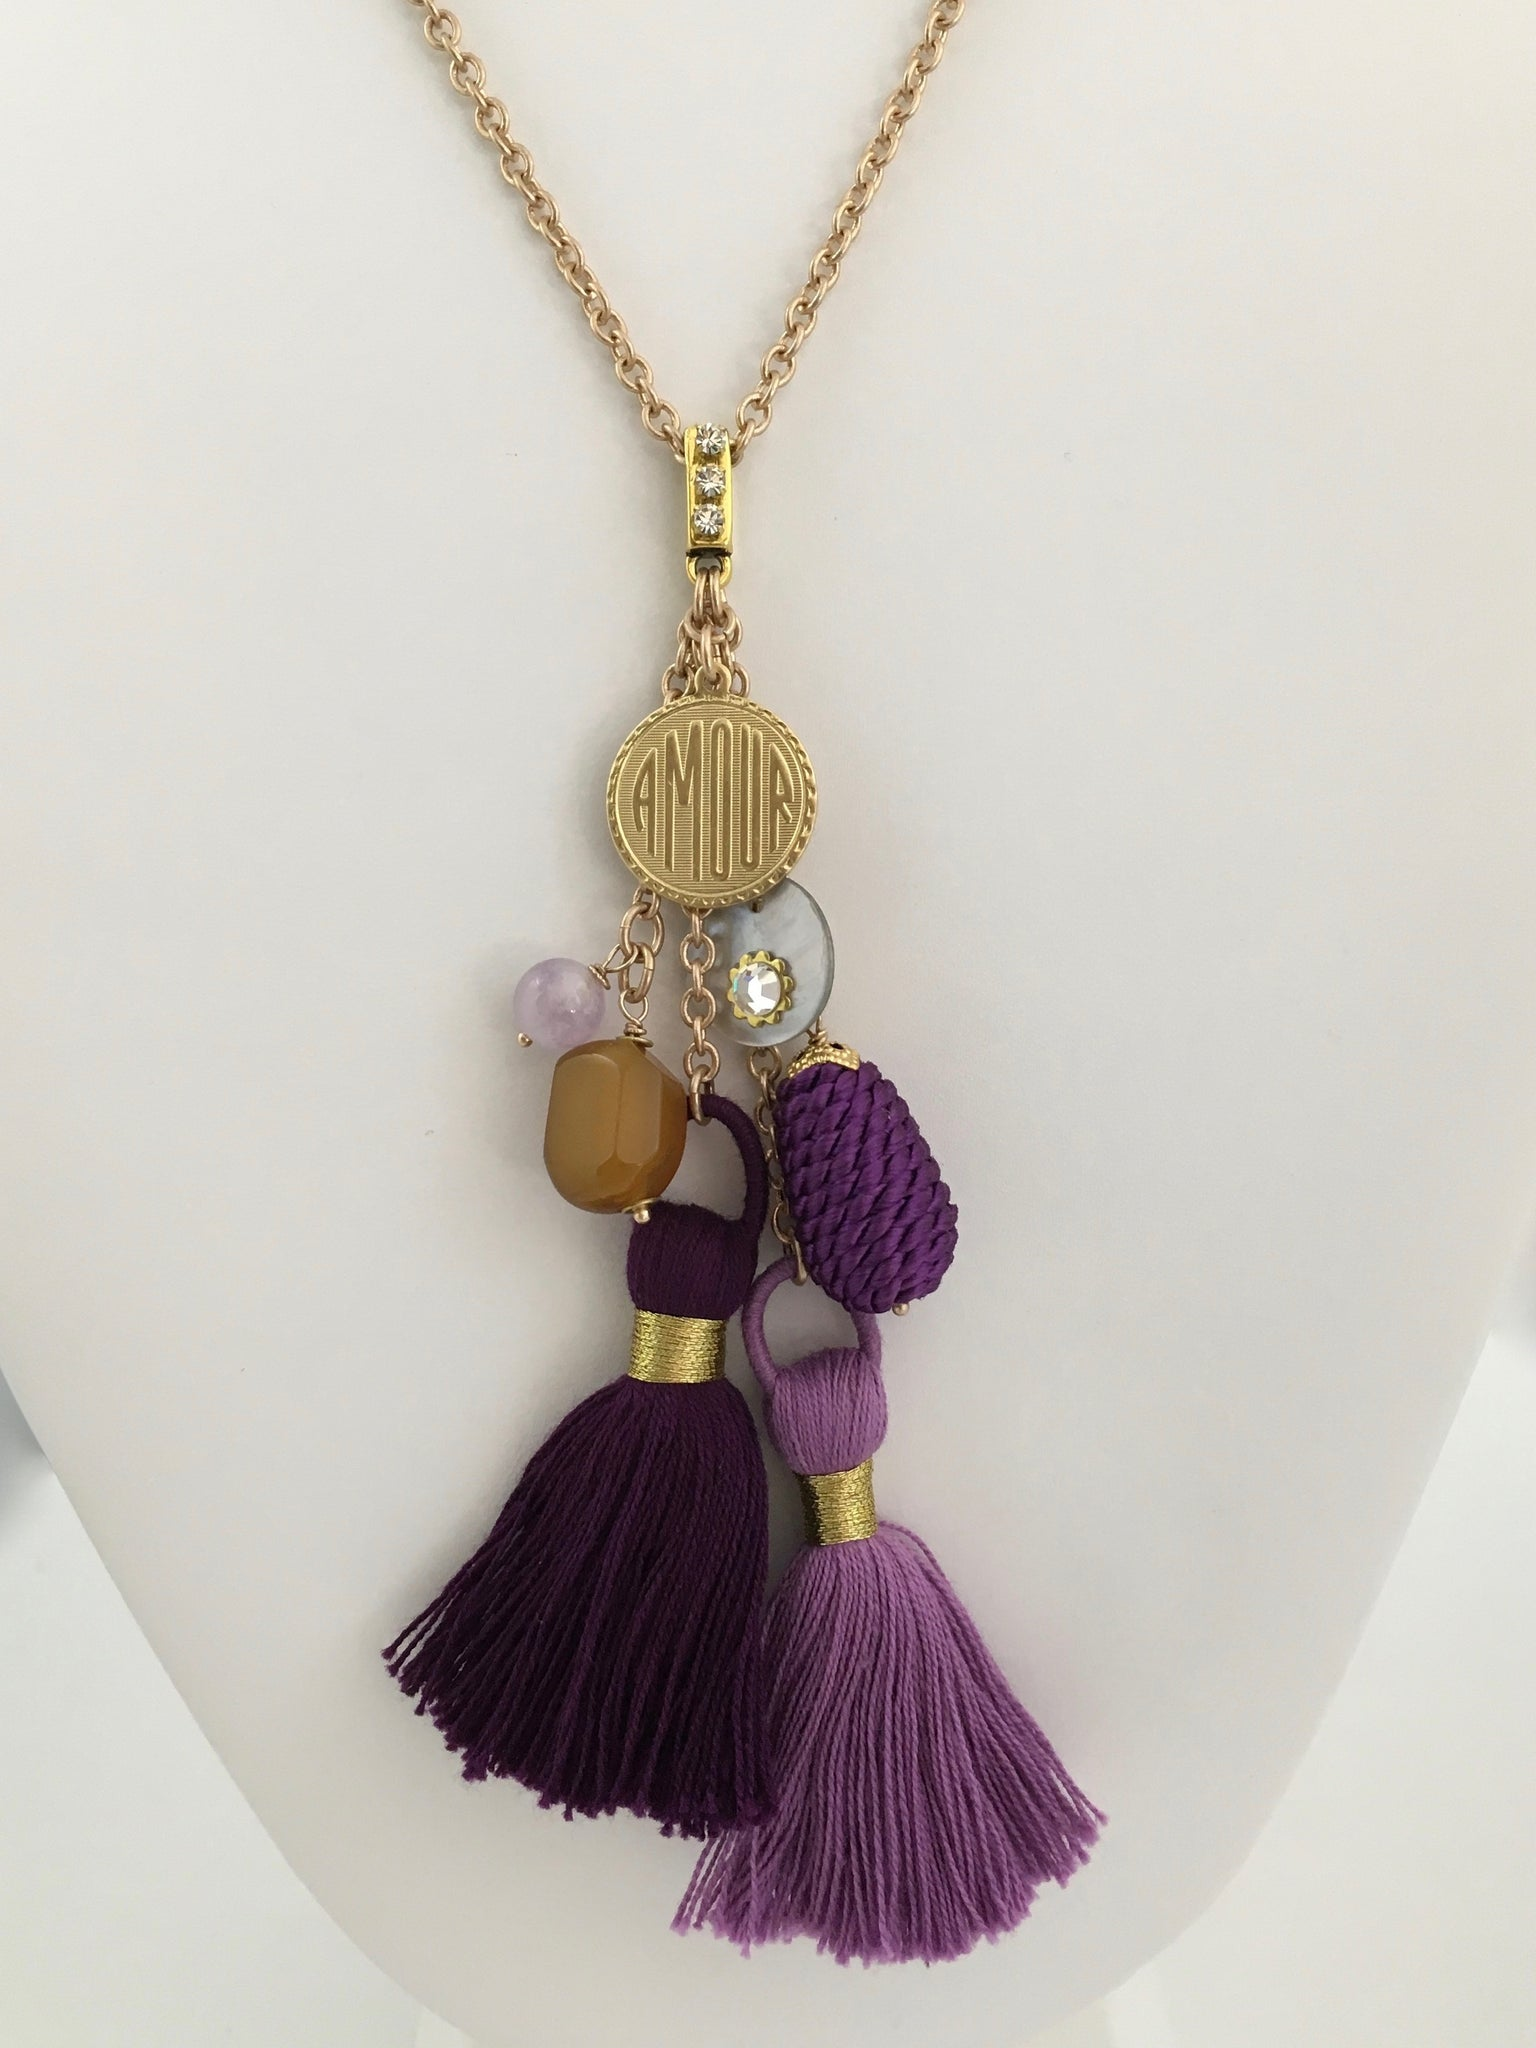 Amour Summer Tassel Necklace